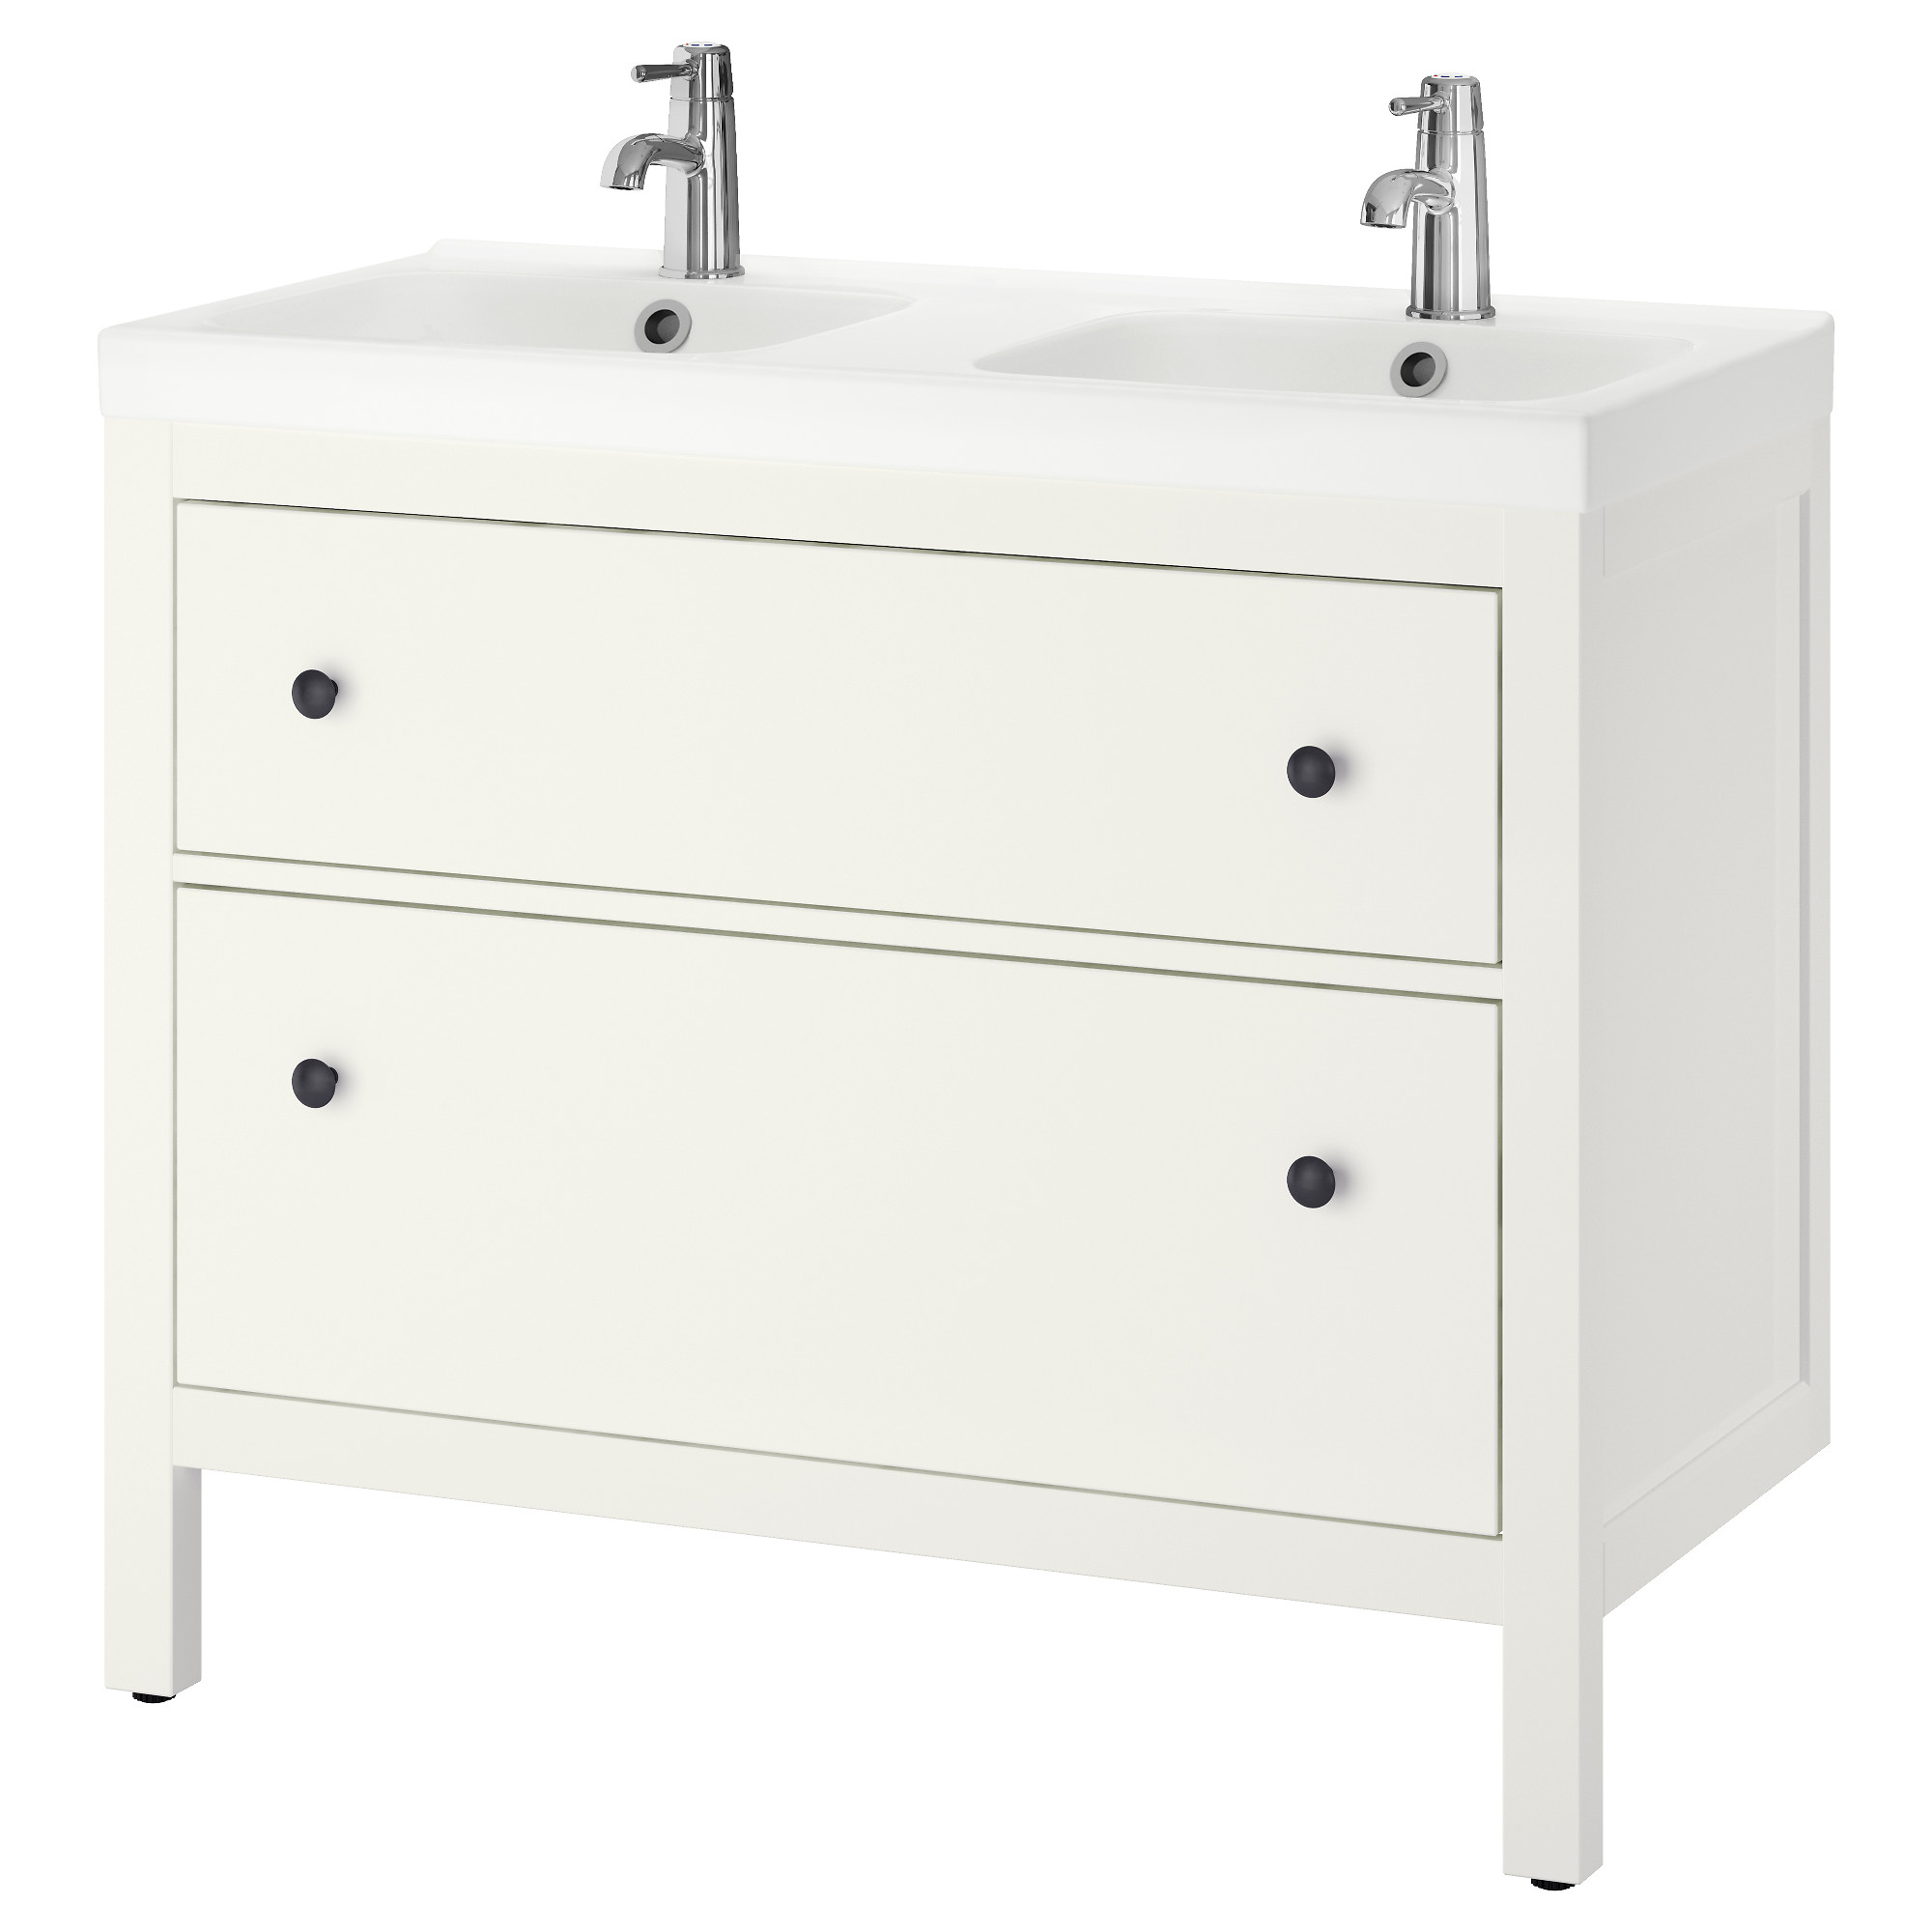 HEMNES / ODENSVIK Sink Cabinet With 2 Drawers, White Width: 40 1/2 ?